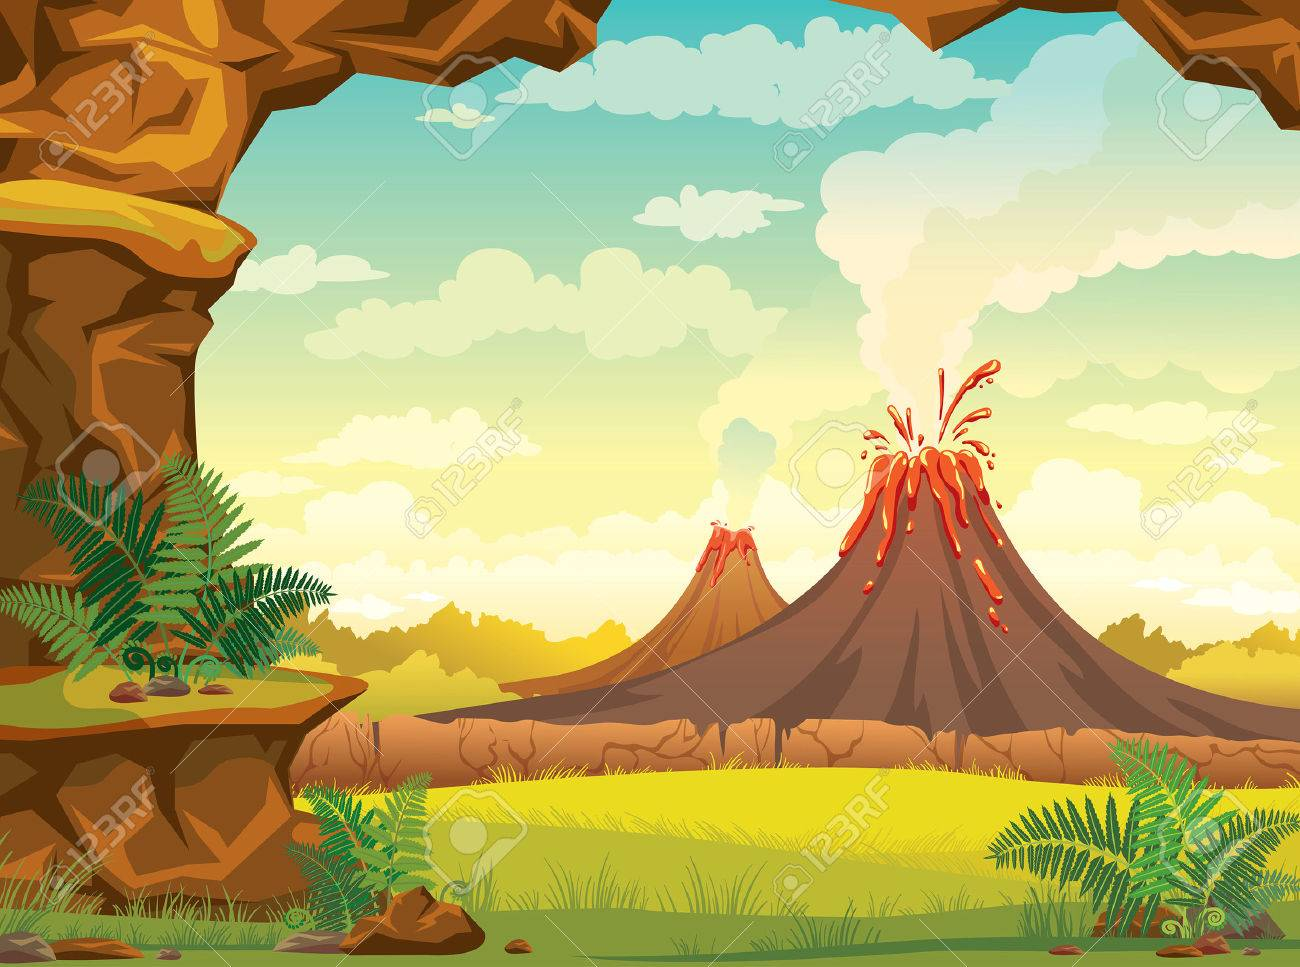 Vector natural illustration - prehistoric lanscape with cave, smoky volcanoes and green grass on a cloudy sky. Stock Vector - 46319697